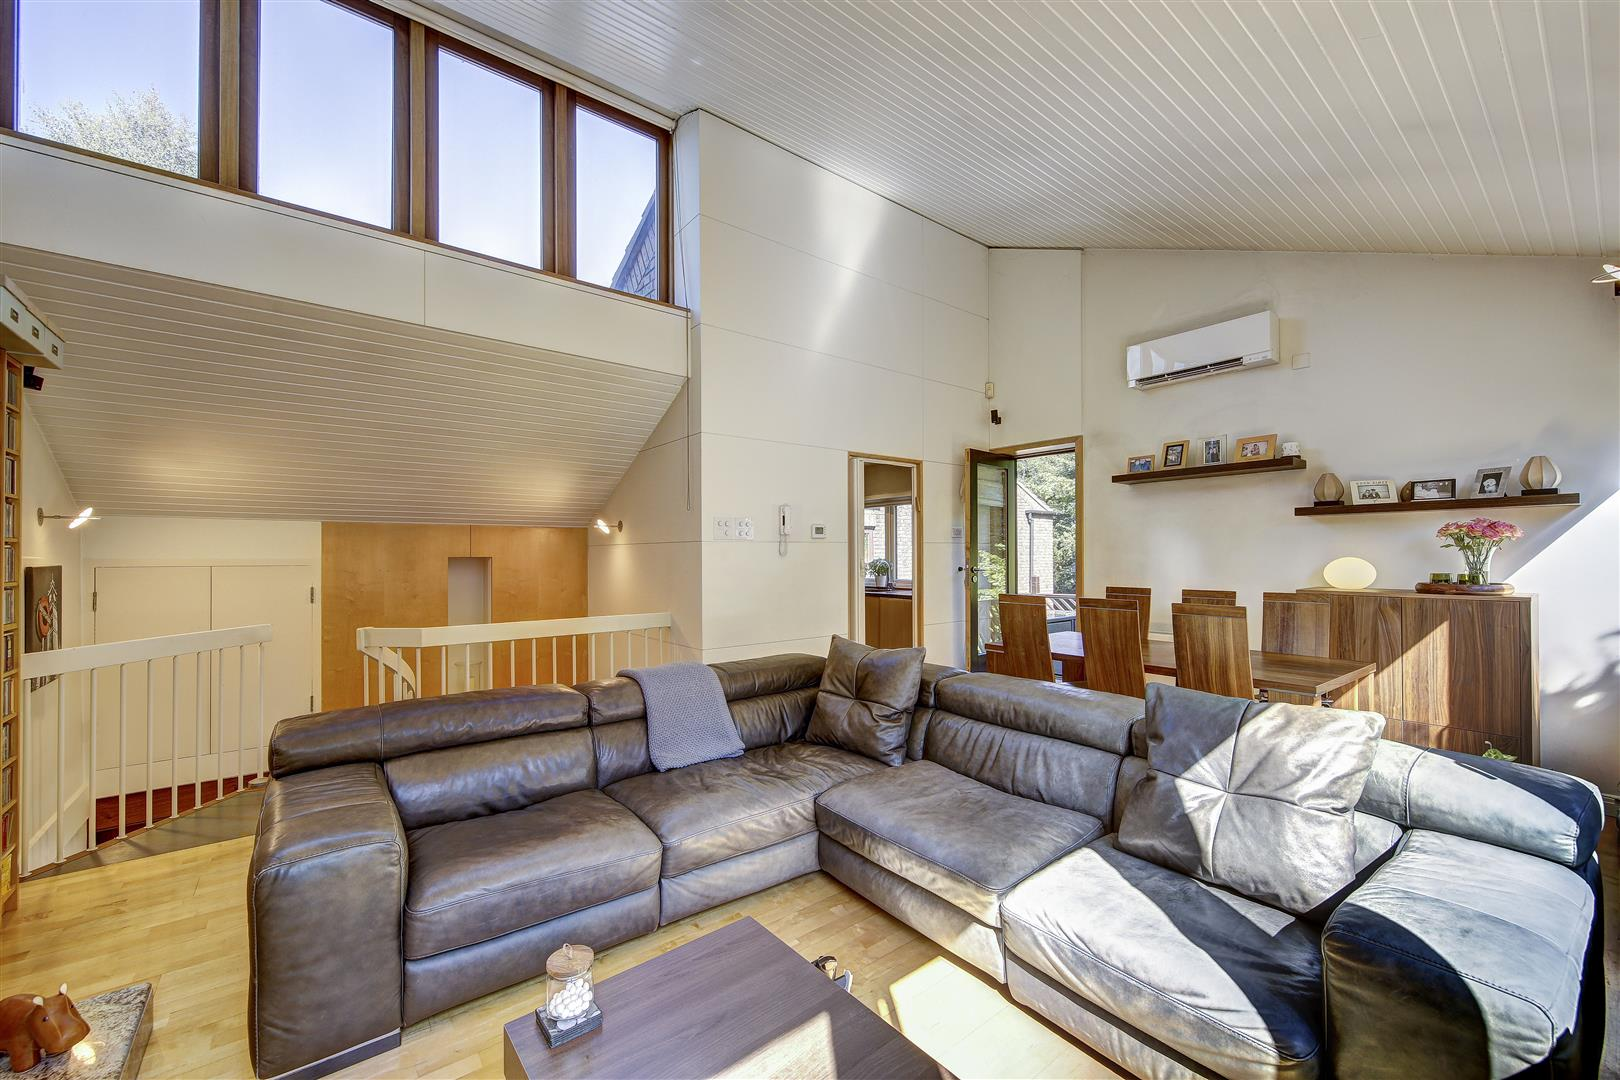 2 Bedrooms House for sale in Mansion Gardens, Hampstead, NW3